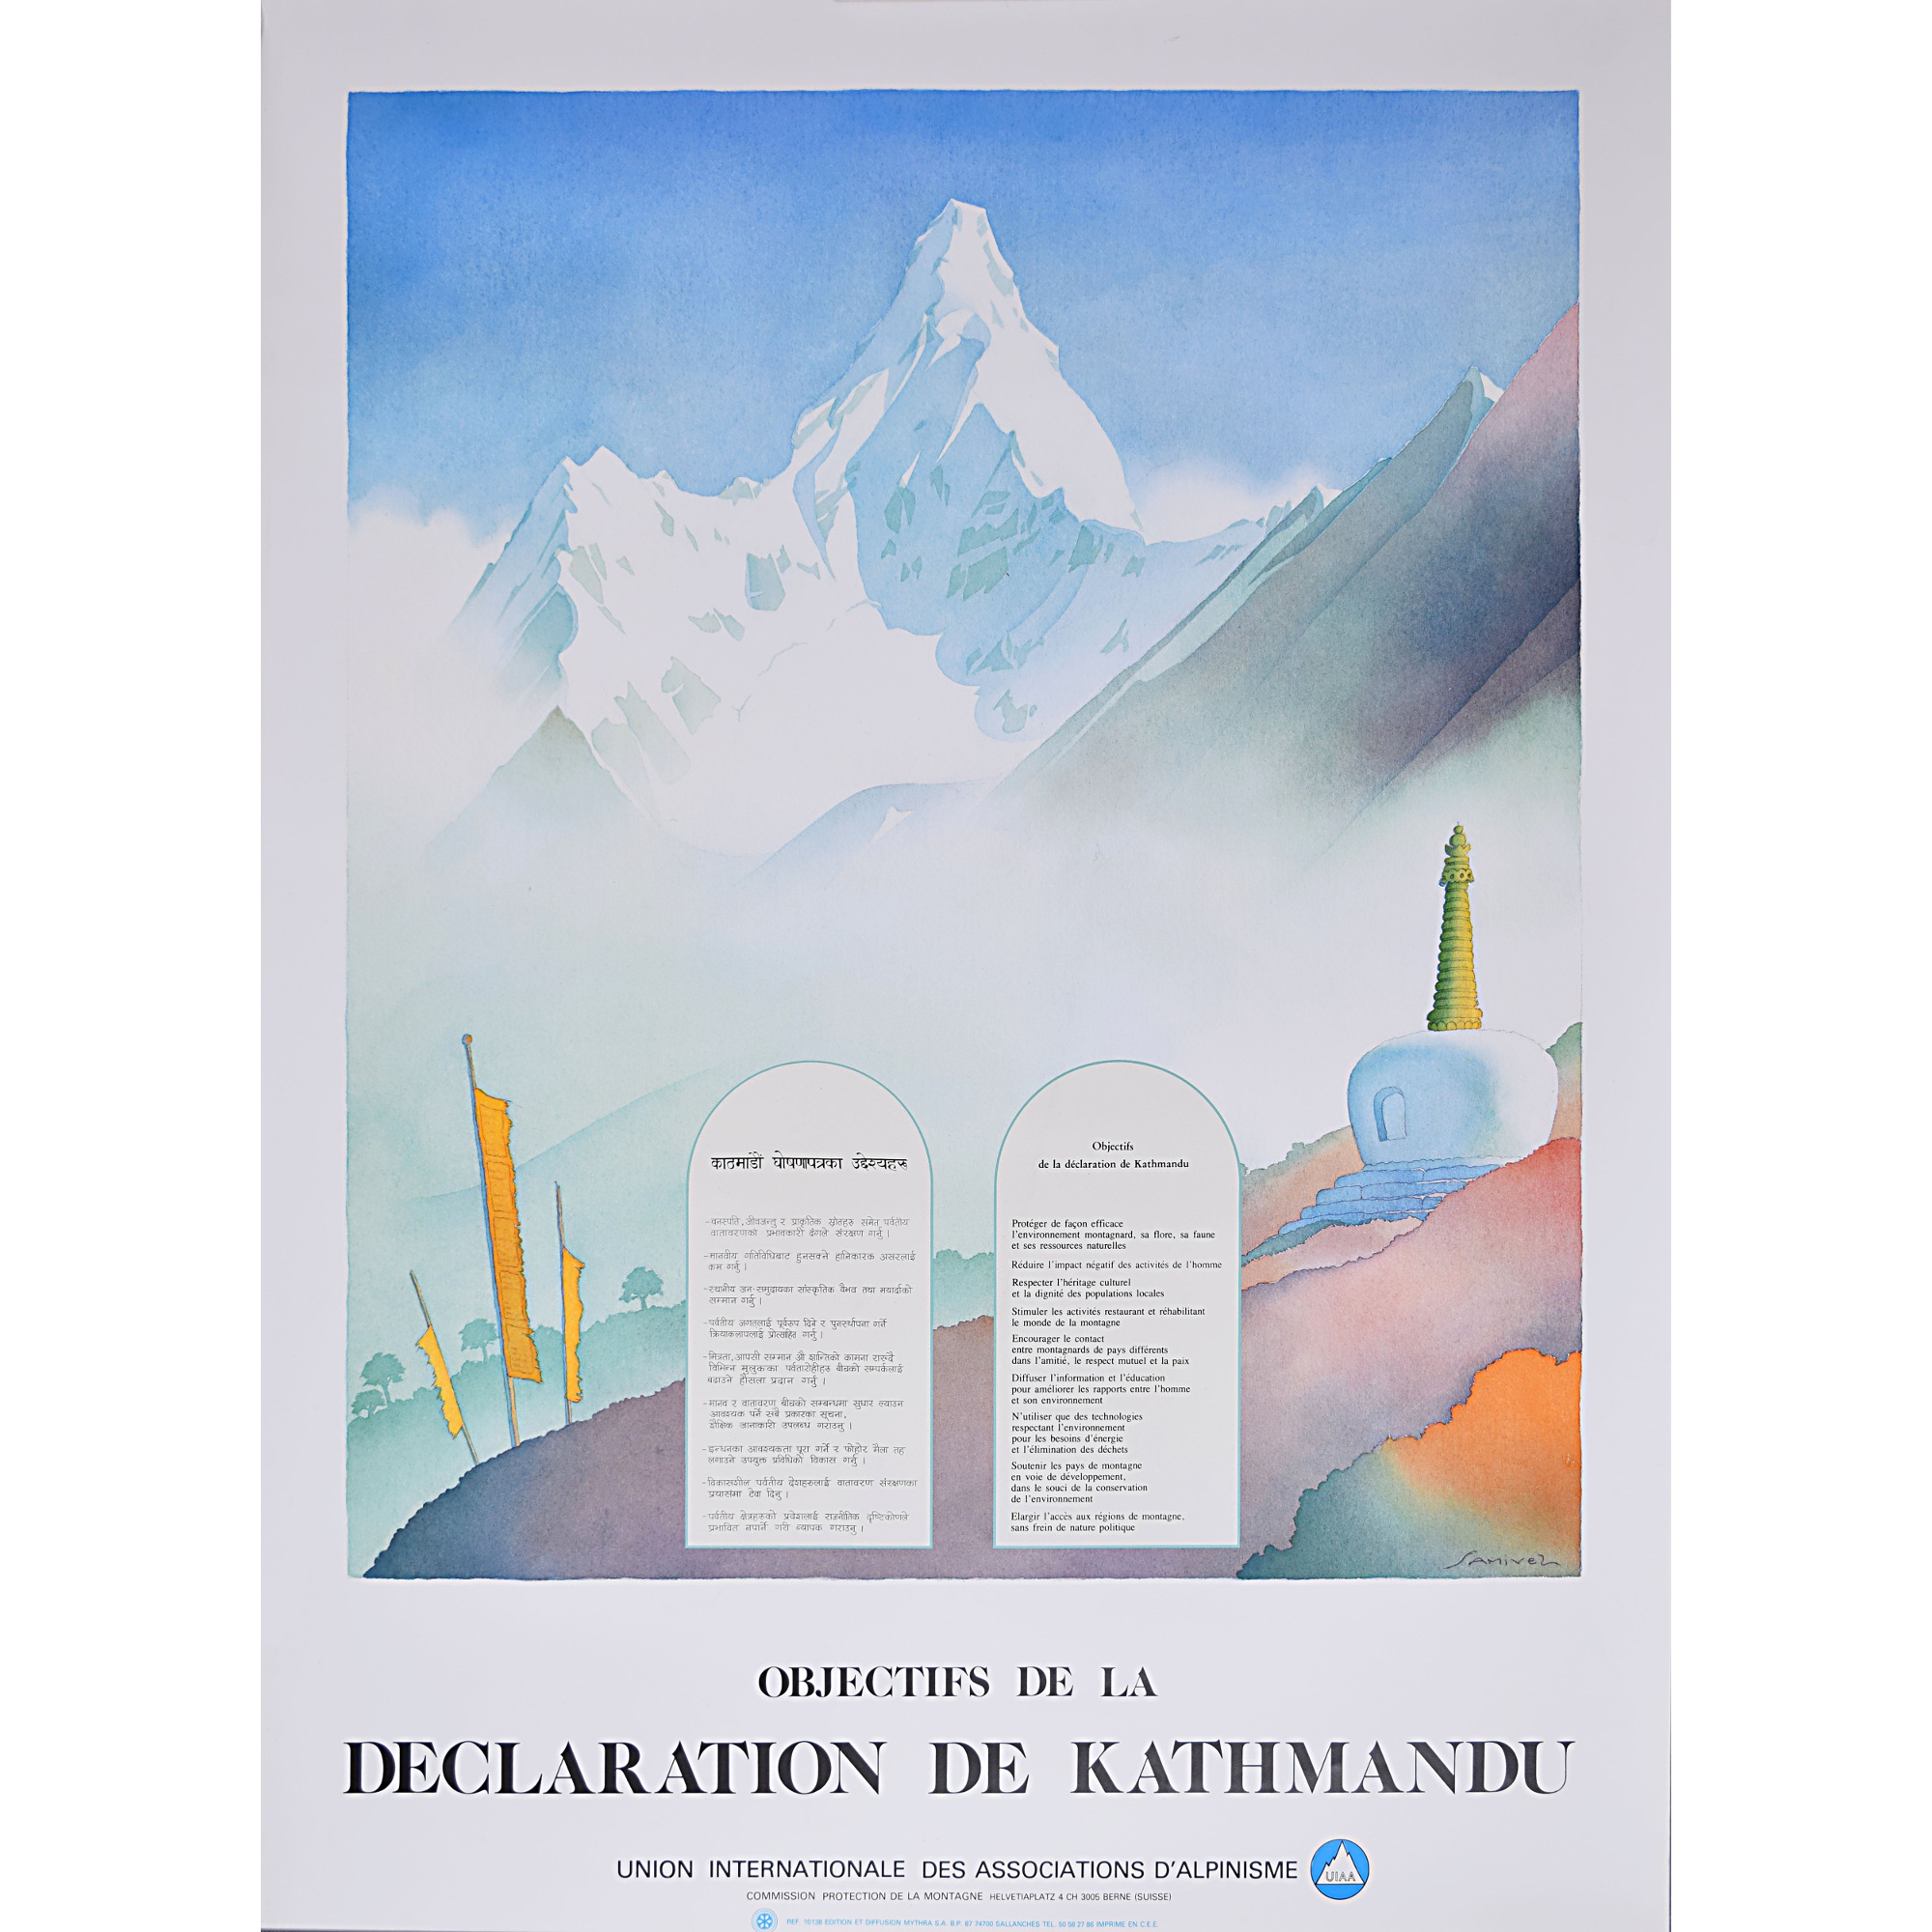 'Samivel' Paul Gayet-Tancrède, Objectives of the Kathmandu Declaration Original Poster for sale